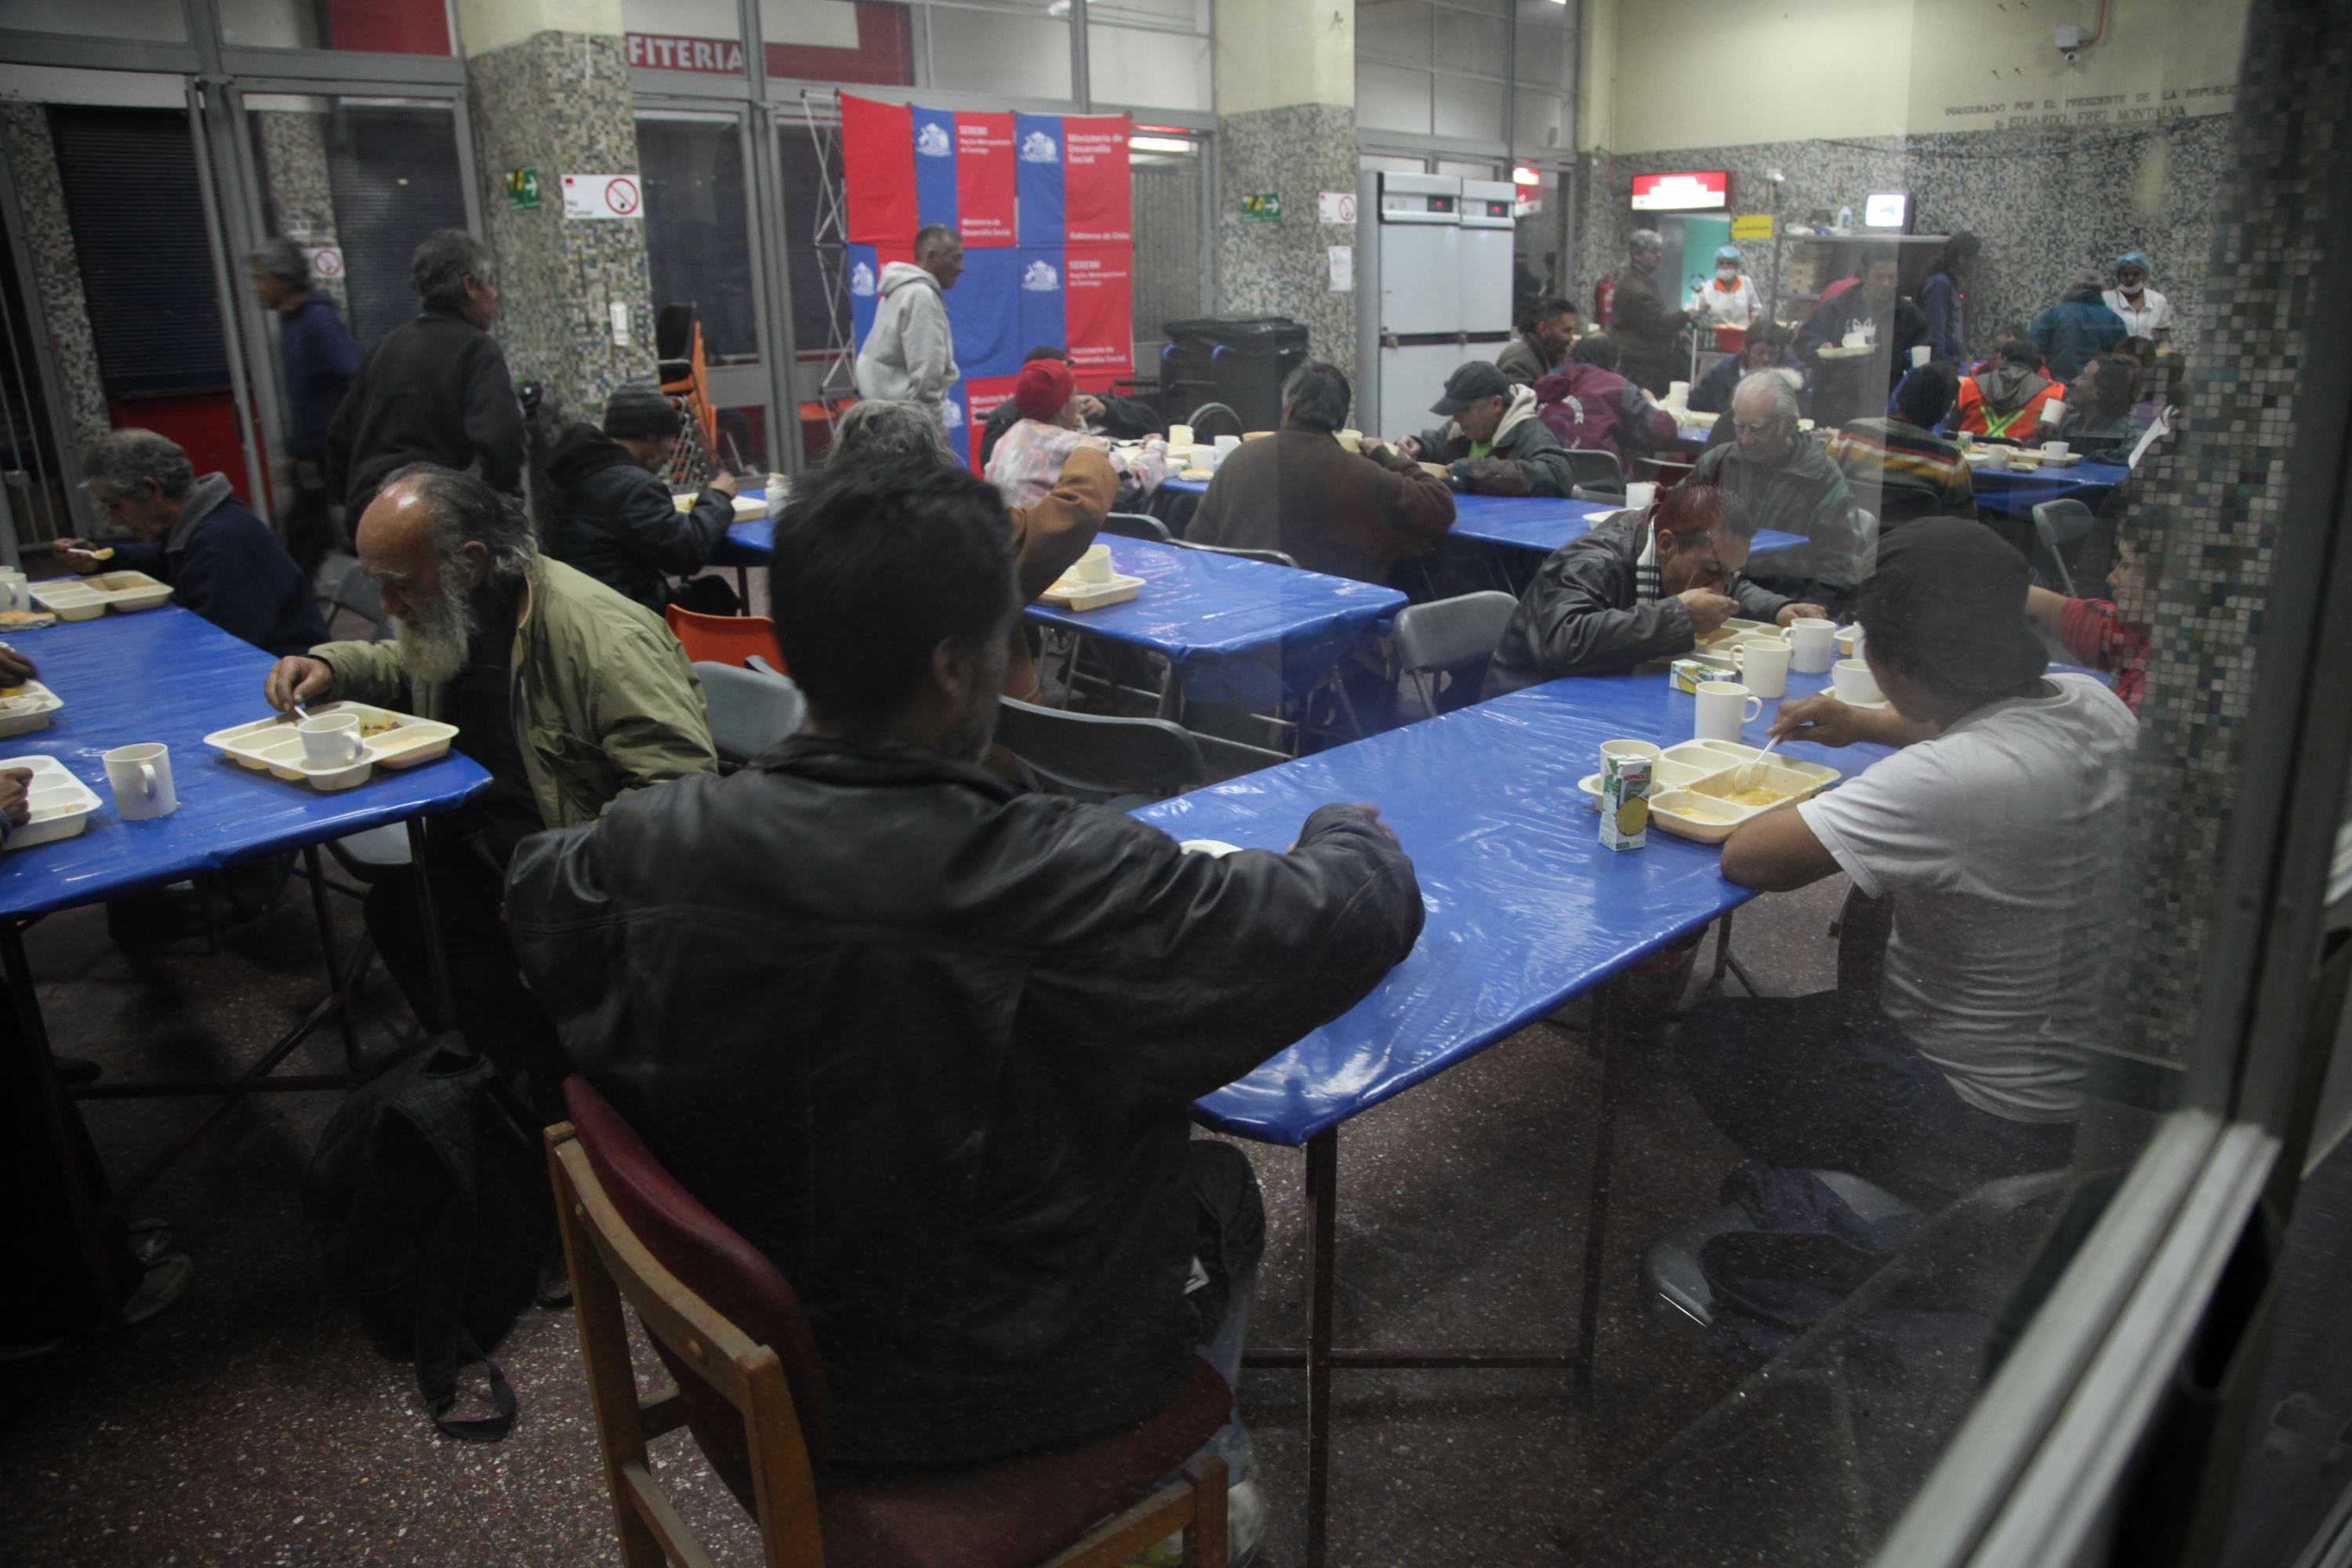 People eat a hot dinner at the indoor stadium Estadio Victor Jara.